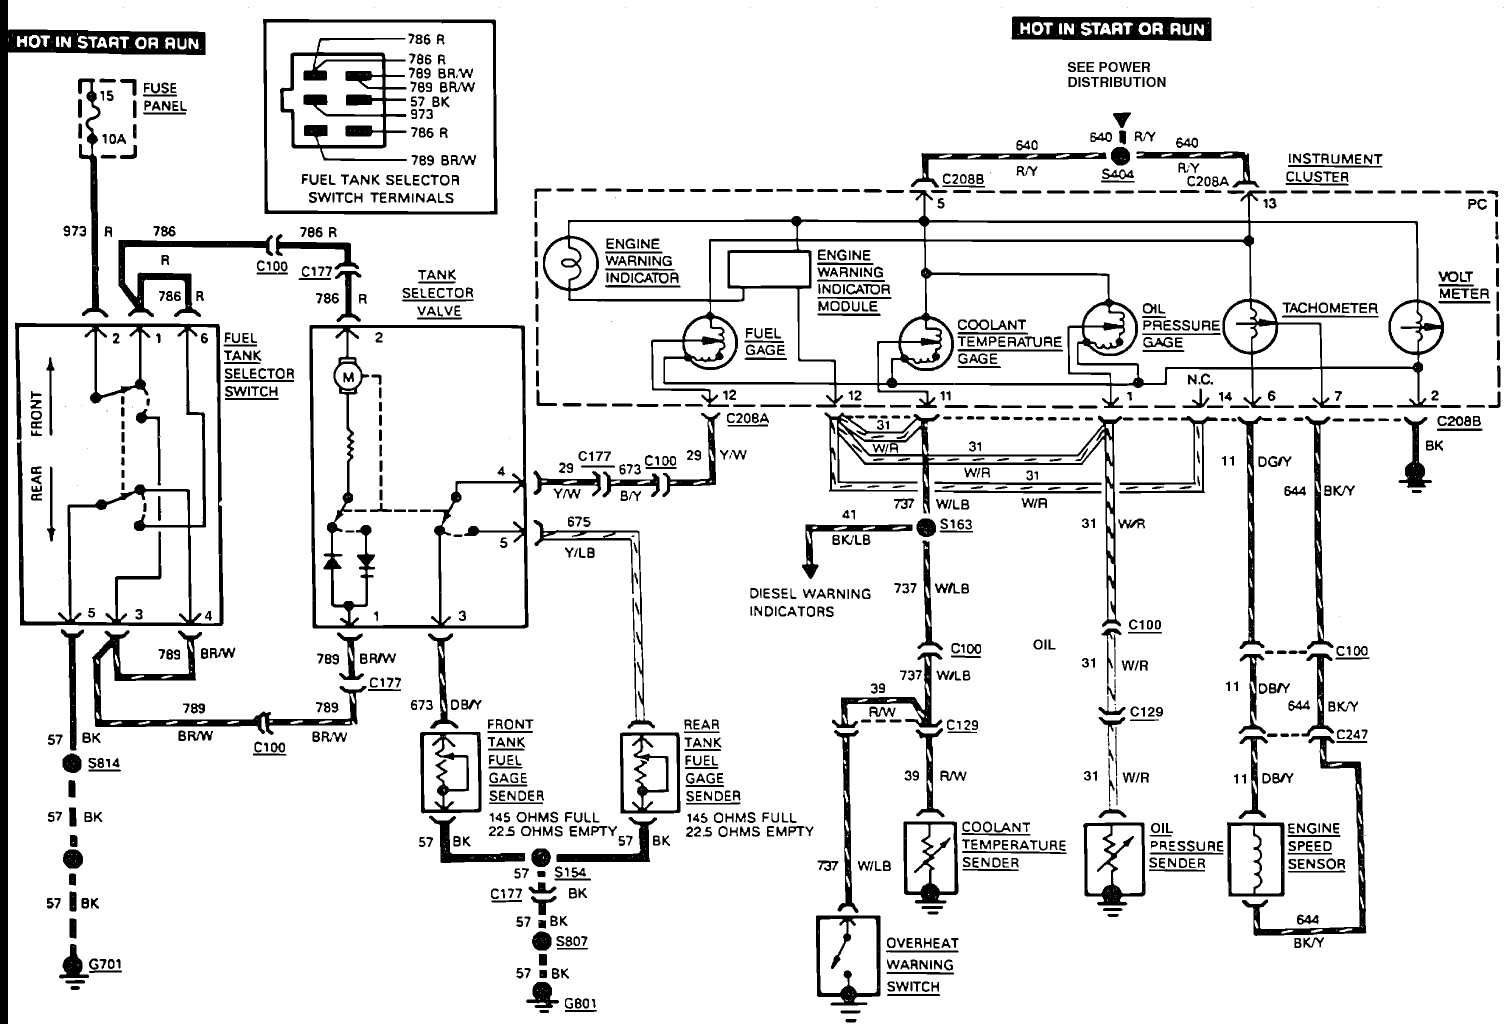 ford e350 wiring diagram | free wiring diagram ford wiring harness diagram